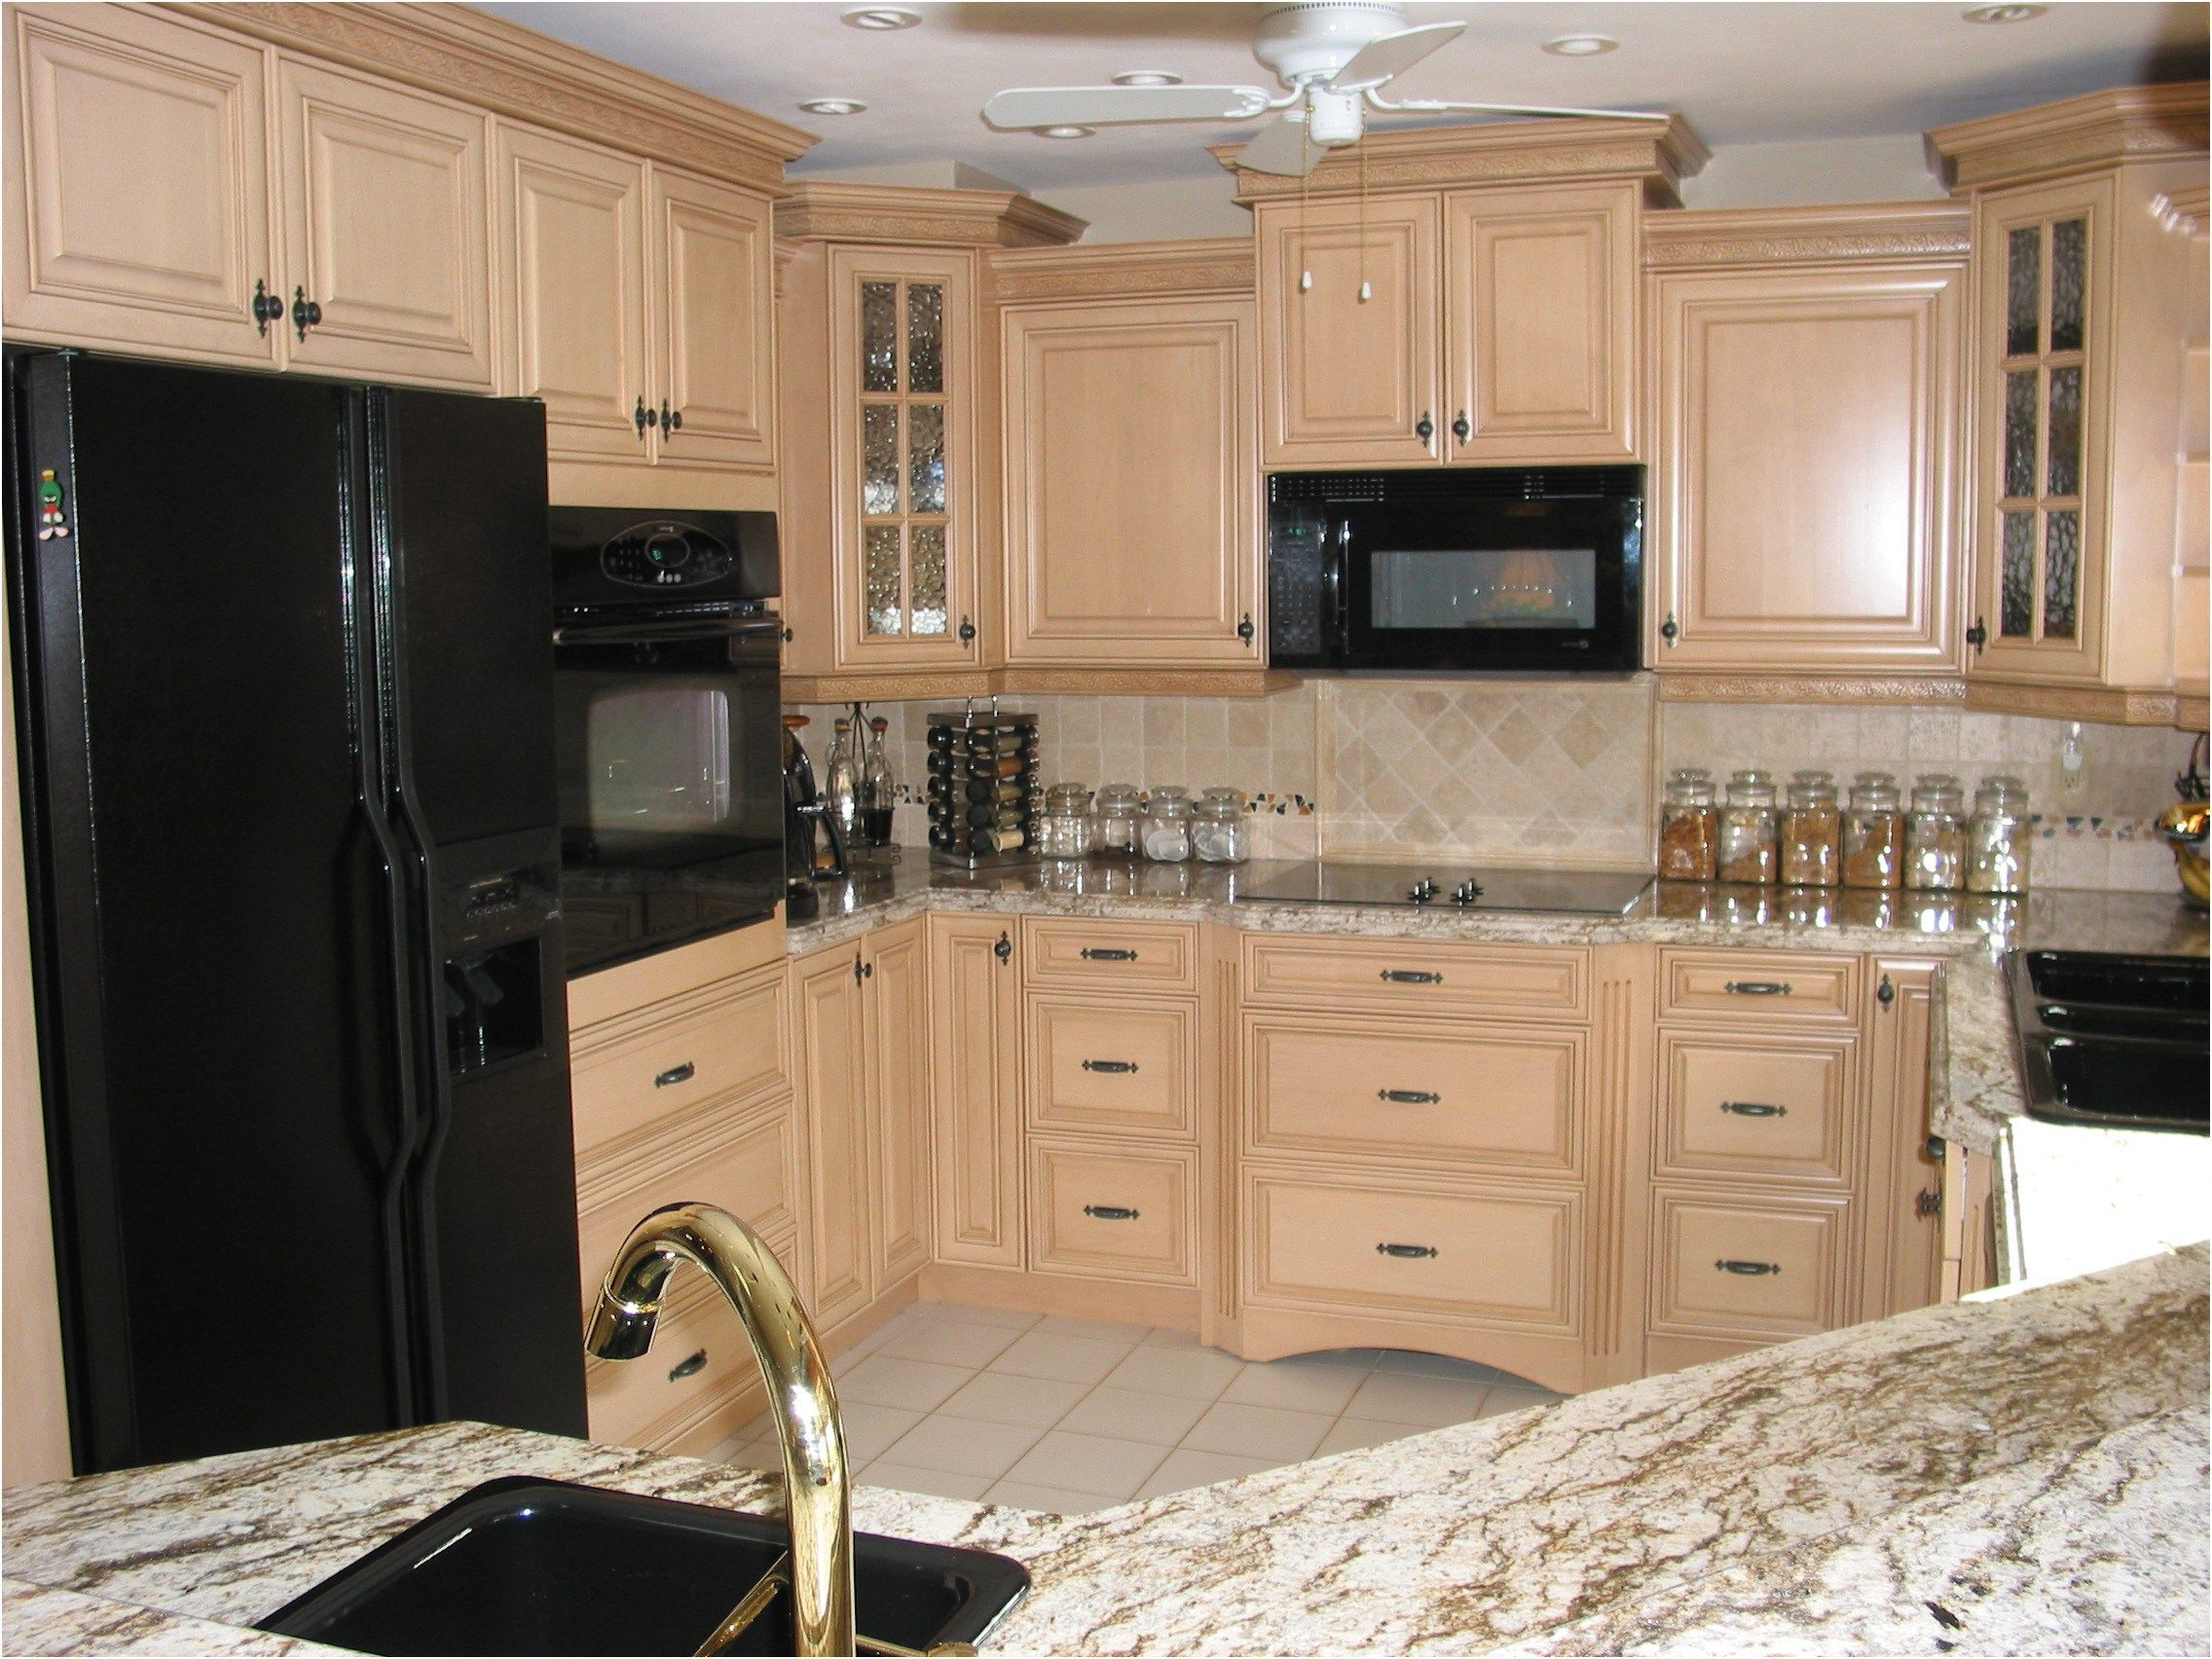 maple kitchen cabinets with black appliances. Wonderful Maple Cabinets Kitchen Black Appliances Glazed And From Design With H